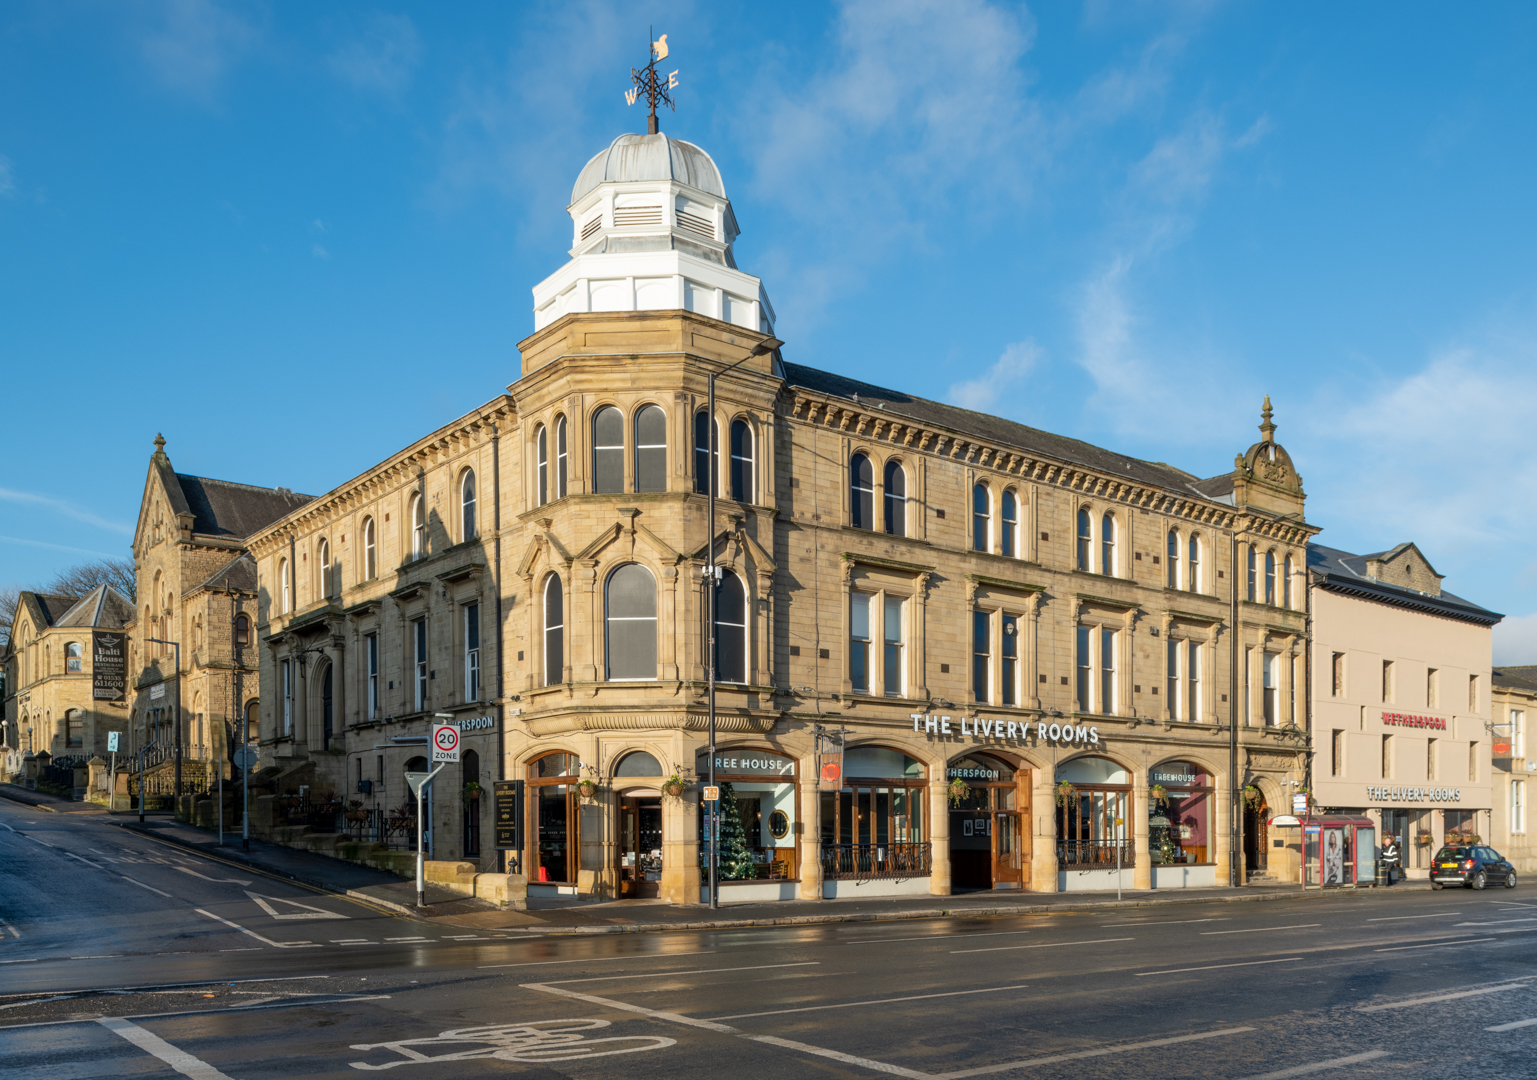 The Livery Rooms Pub In Keighley J D Wetherspoon